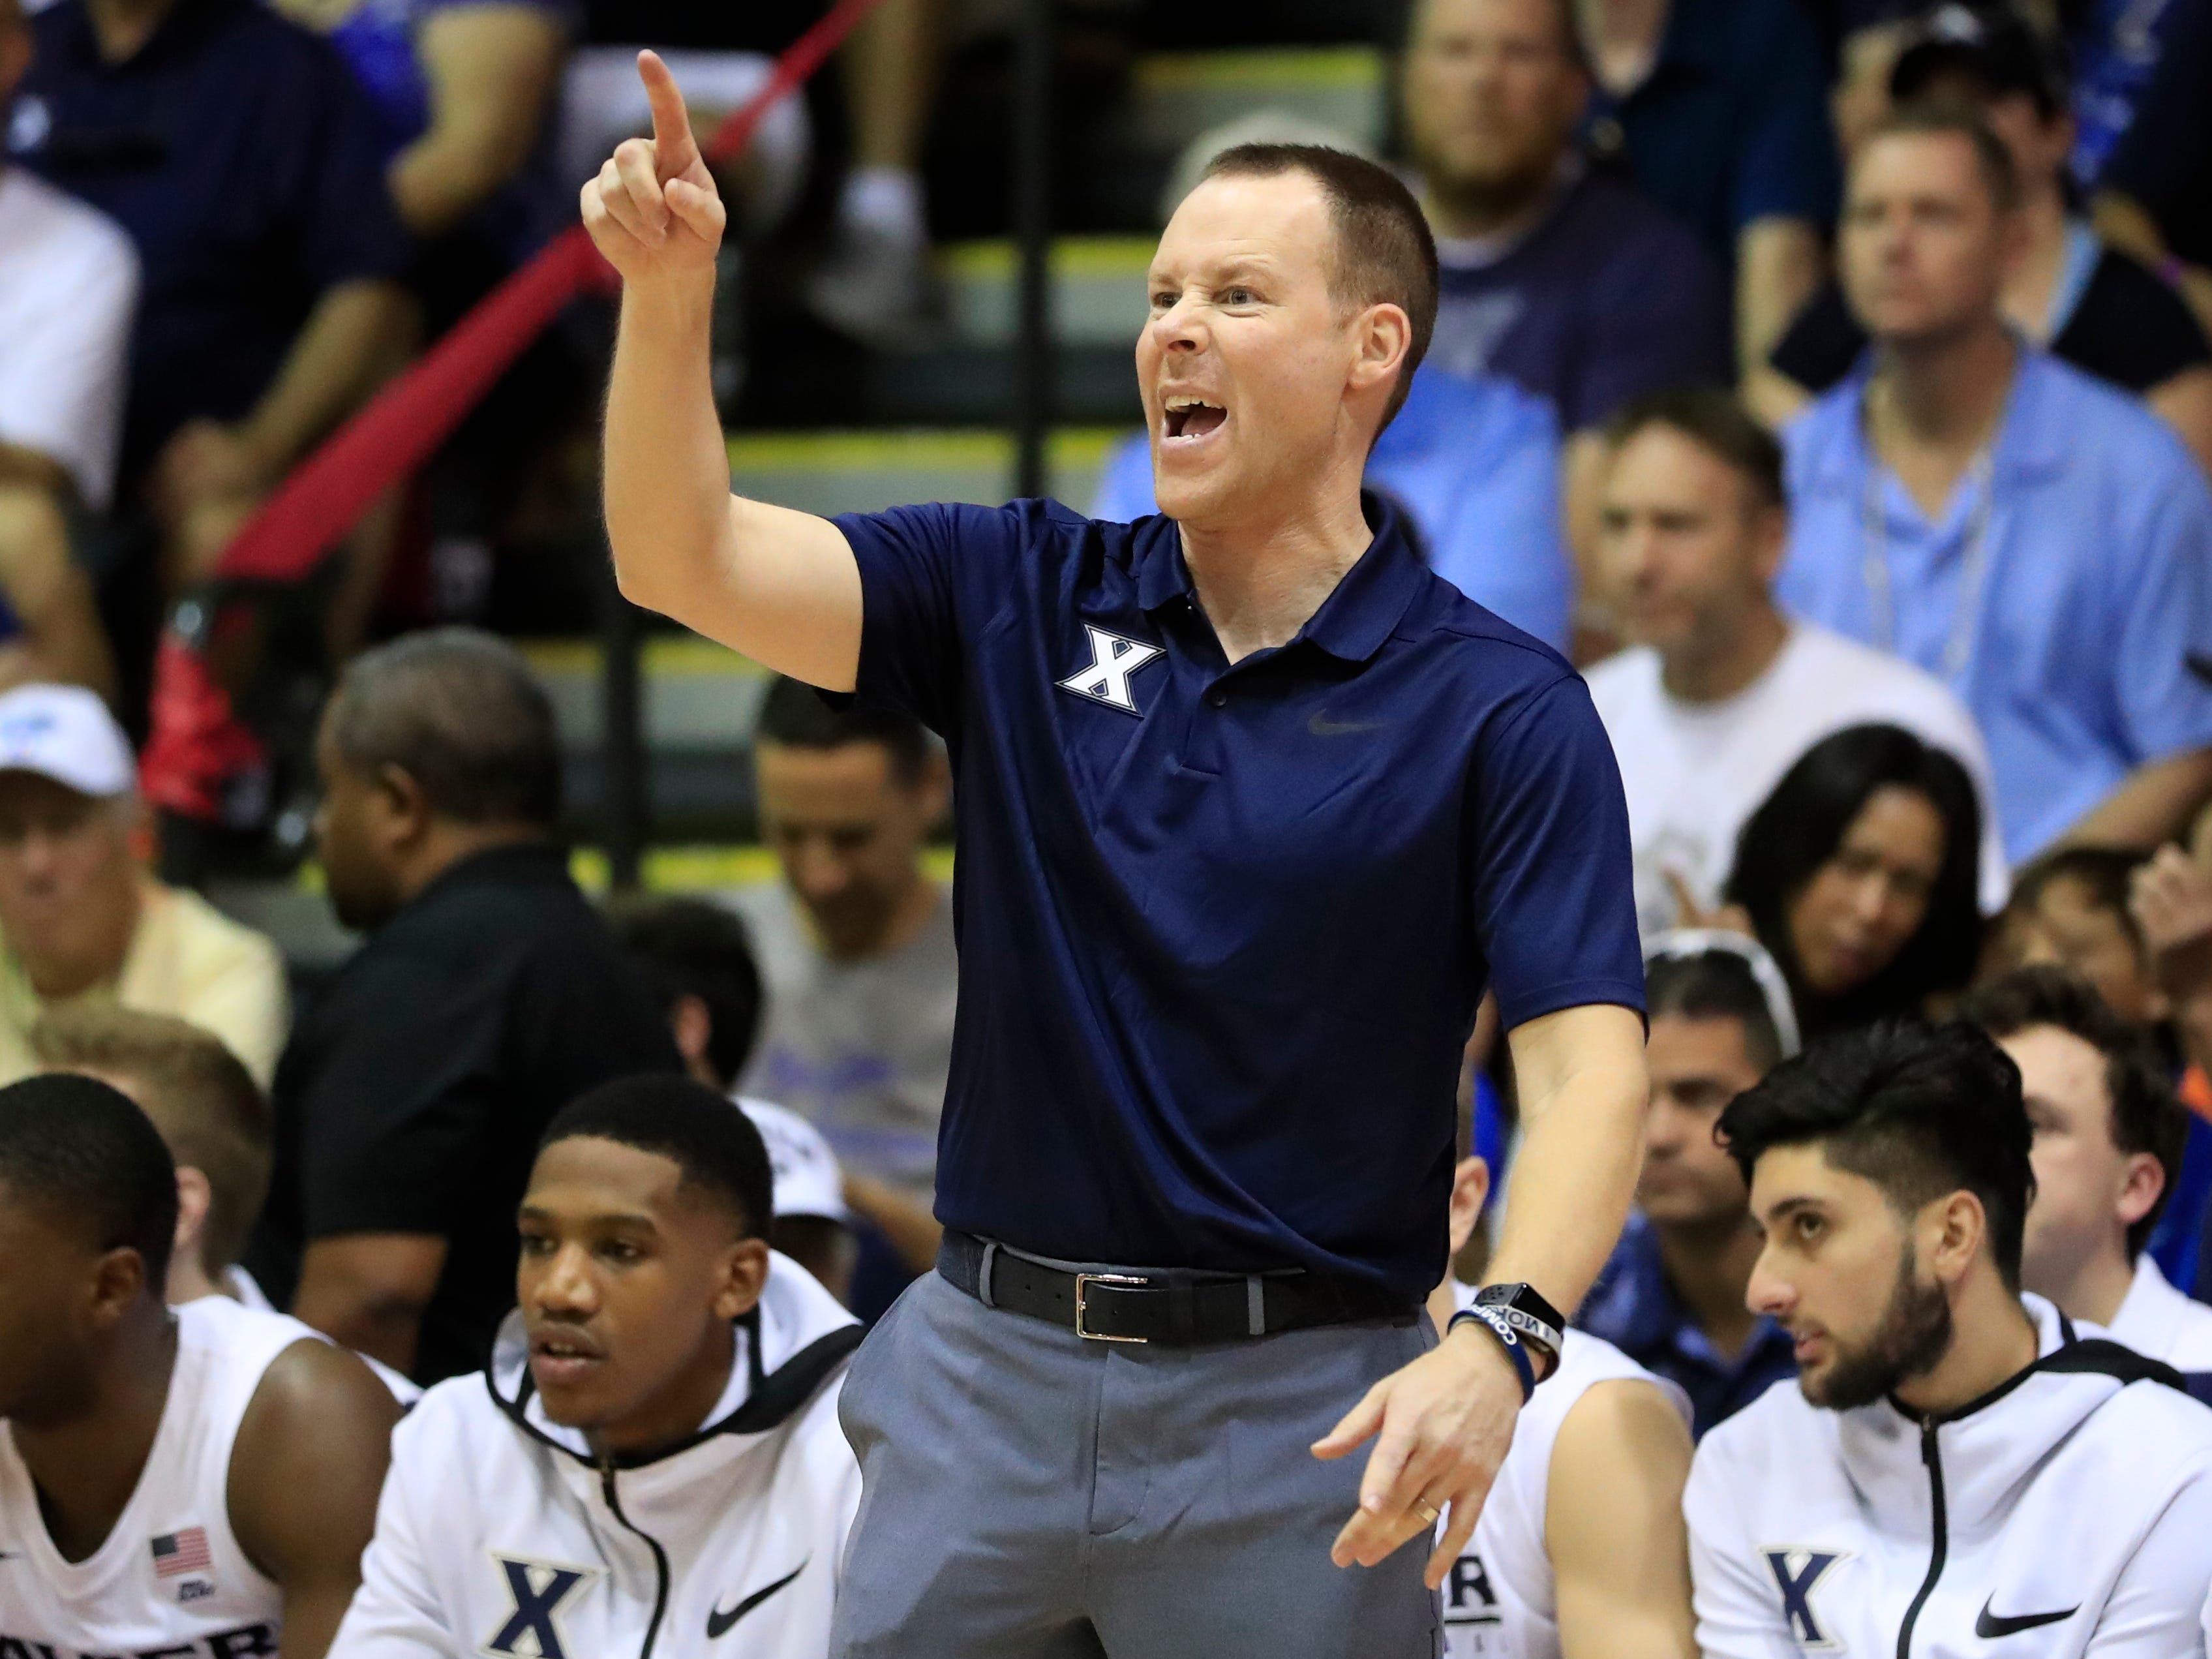 Xavier head coach Travis Steele gives direction to his team during the first half of an NCAA college basketball game against Auburn at the Maui Invitational, Monday, Nov. 19, 2018, in Lahaina, Hawaii.